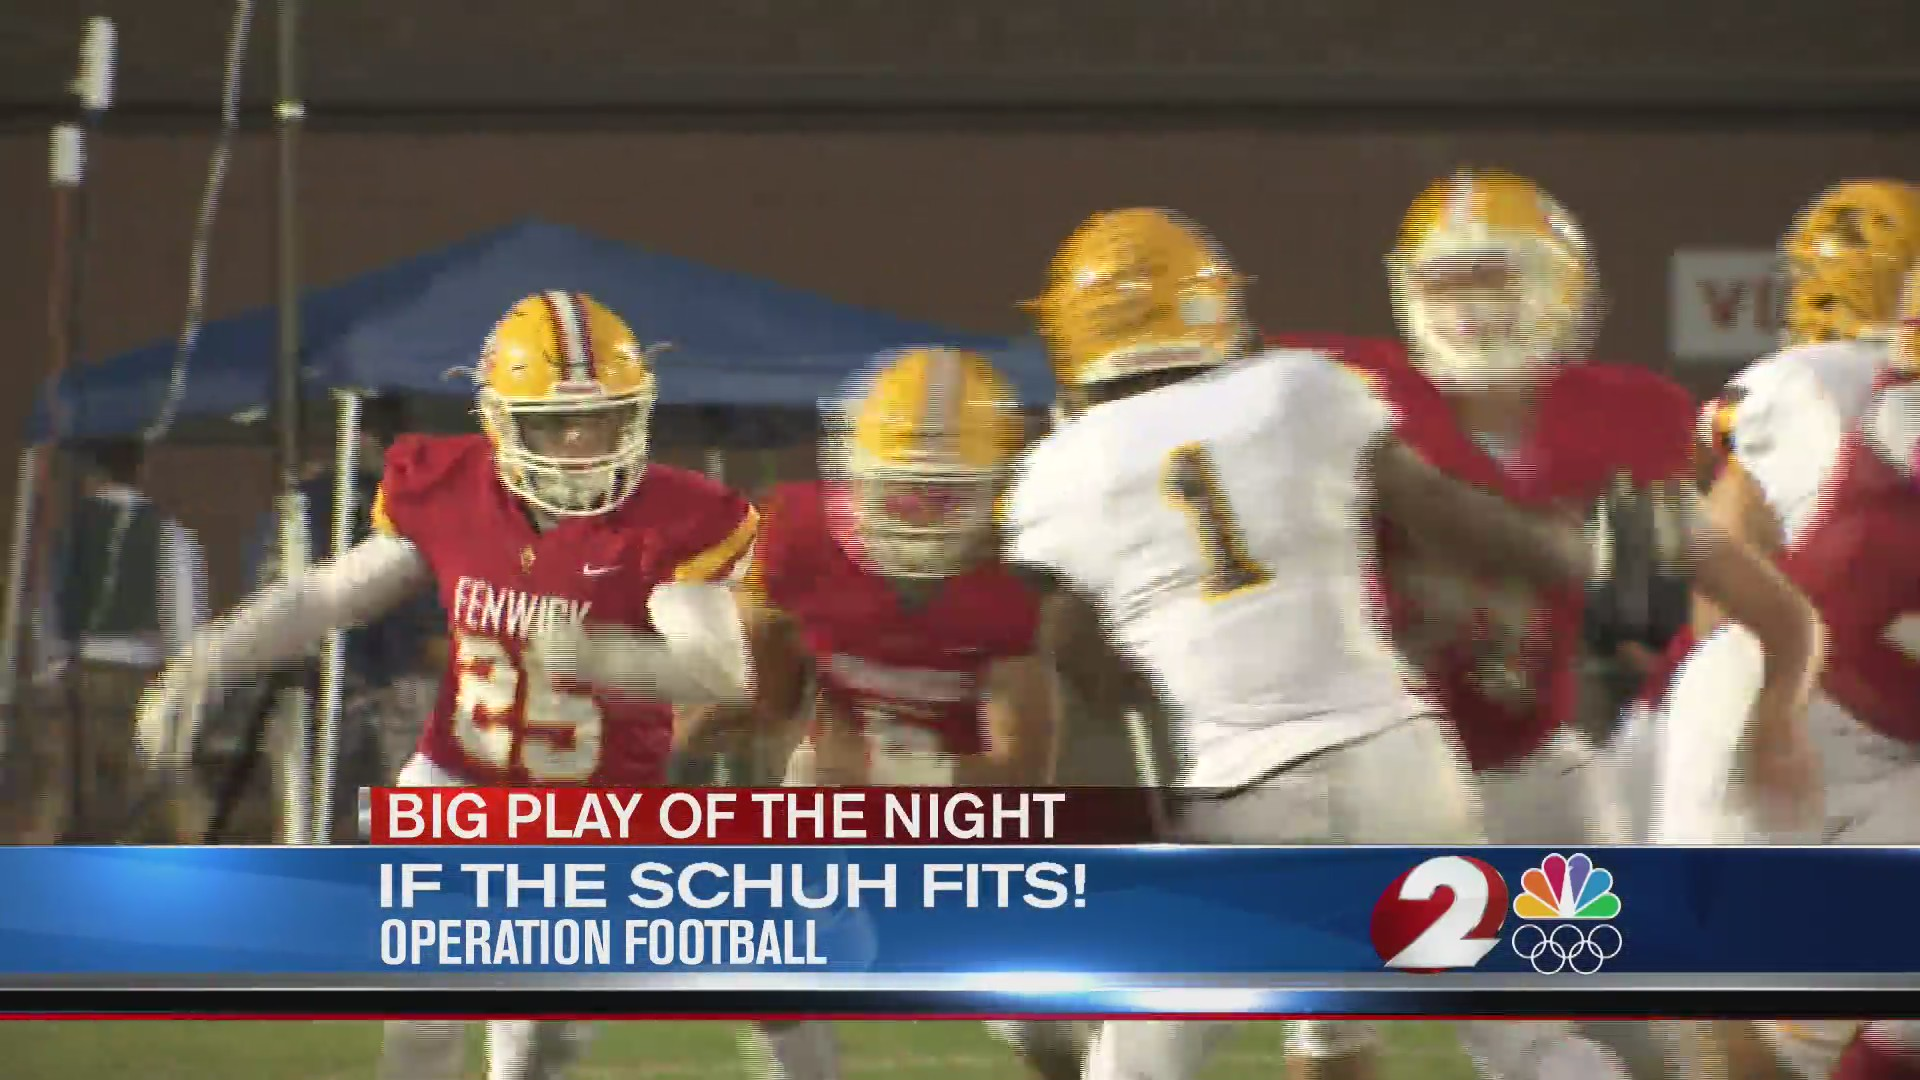 Operation Football Big Play of the Night Week 7: Alter at Fenwick